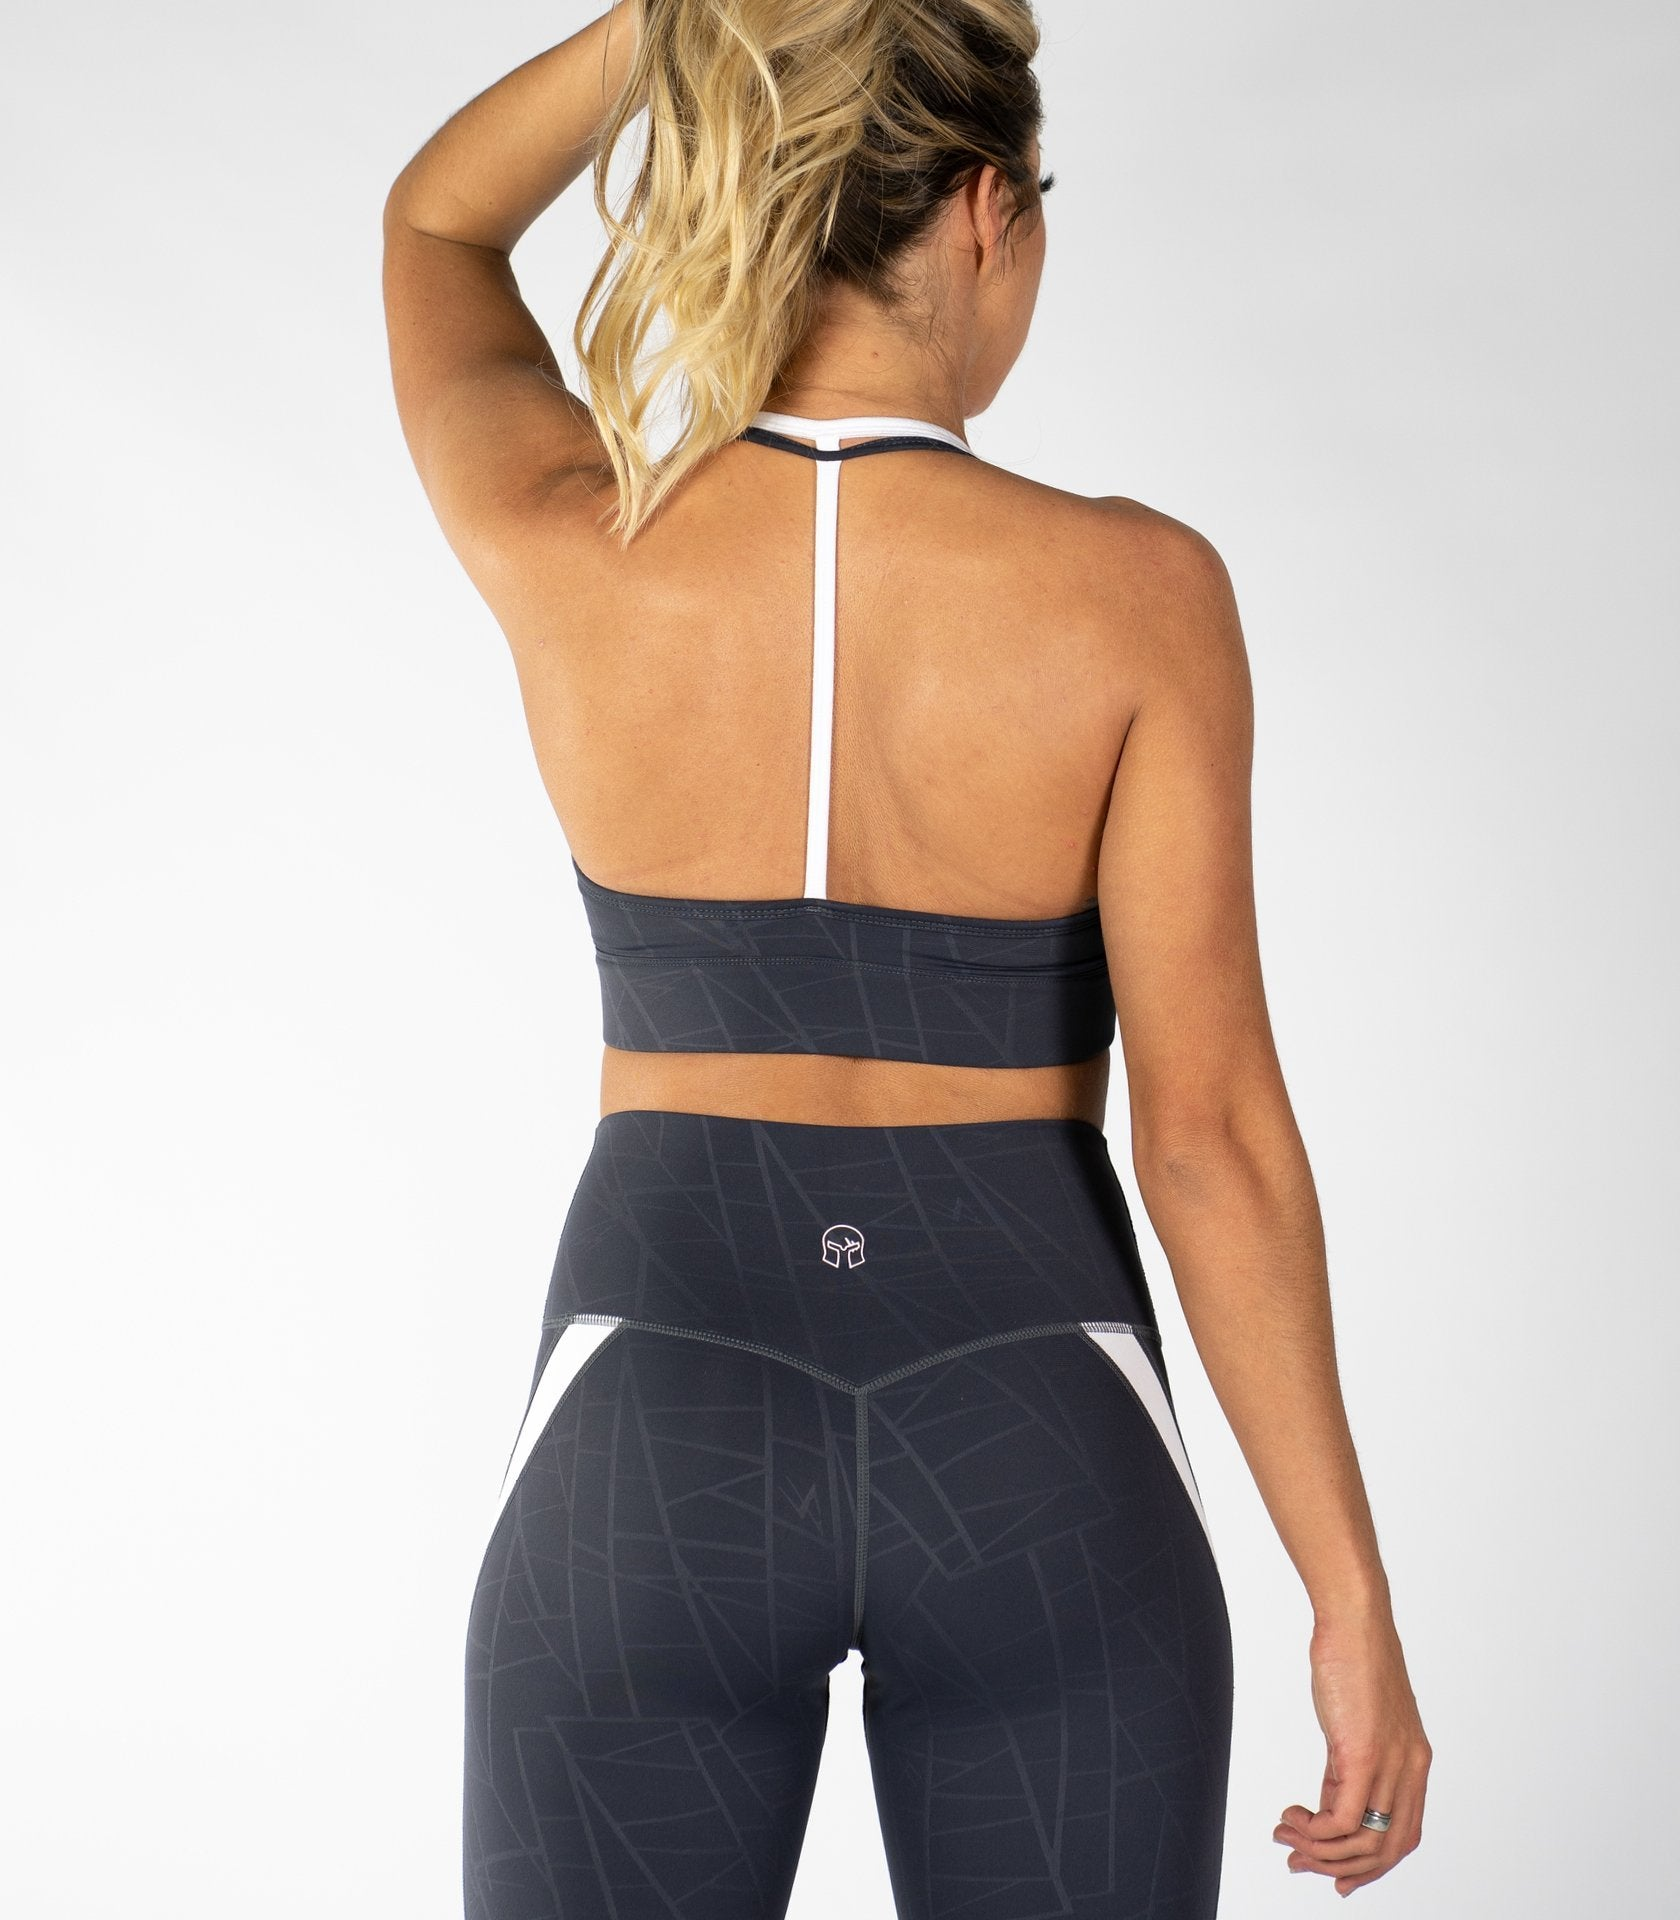 Crown Me Sports Bra - Titan